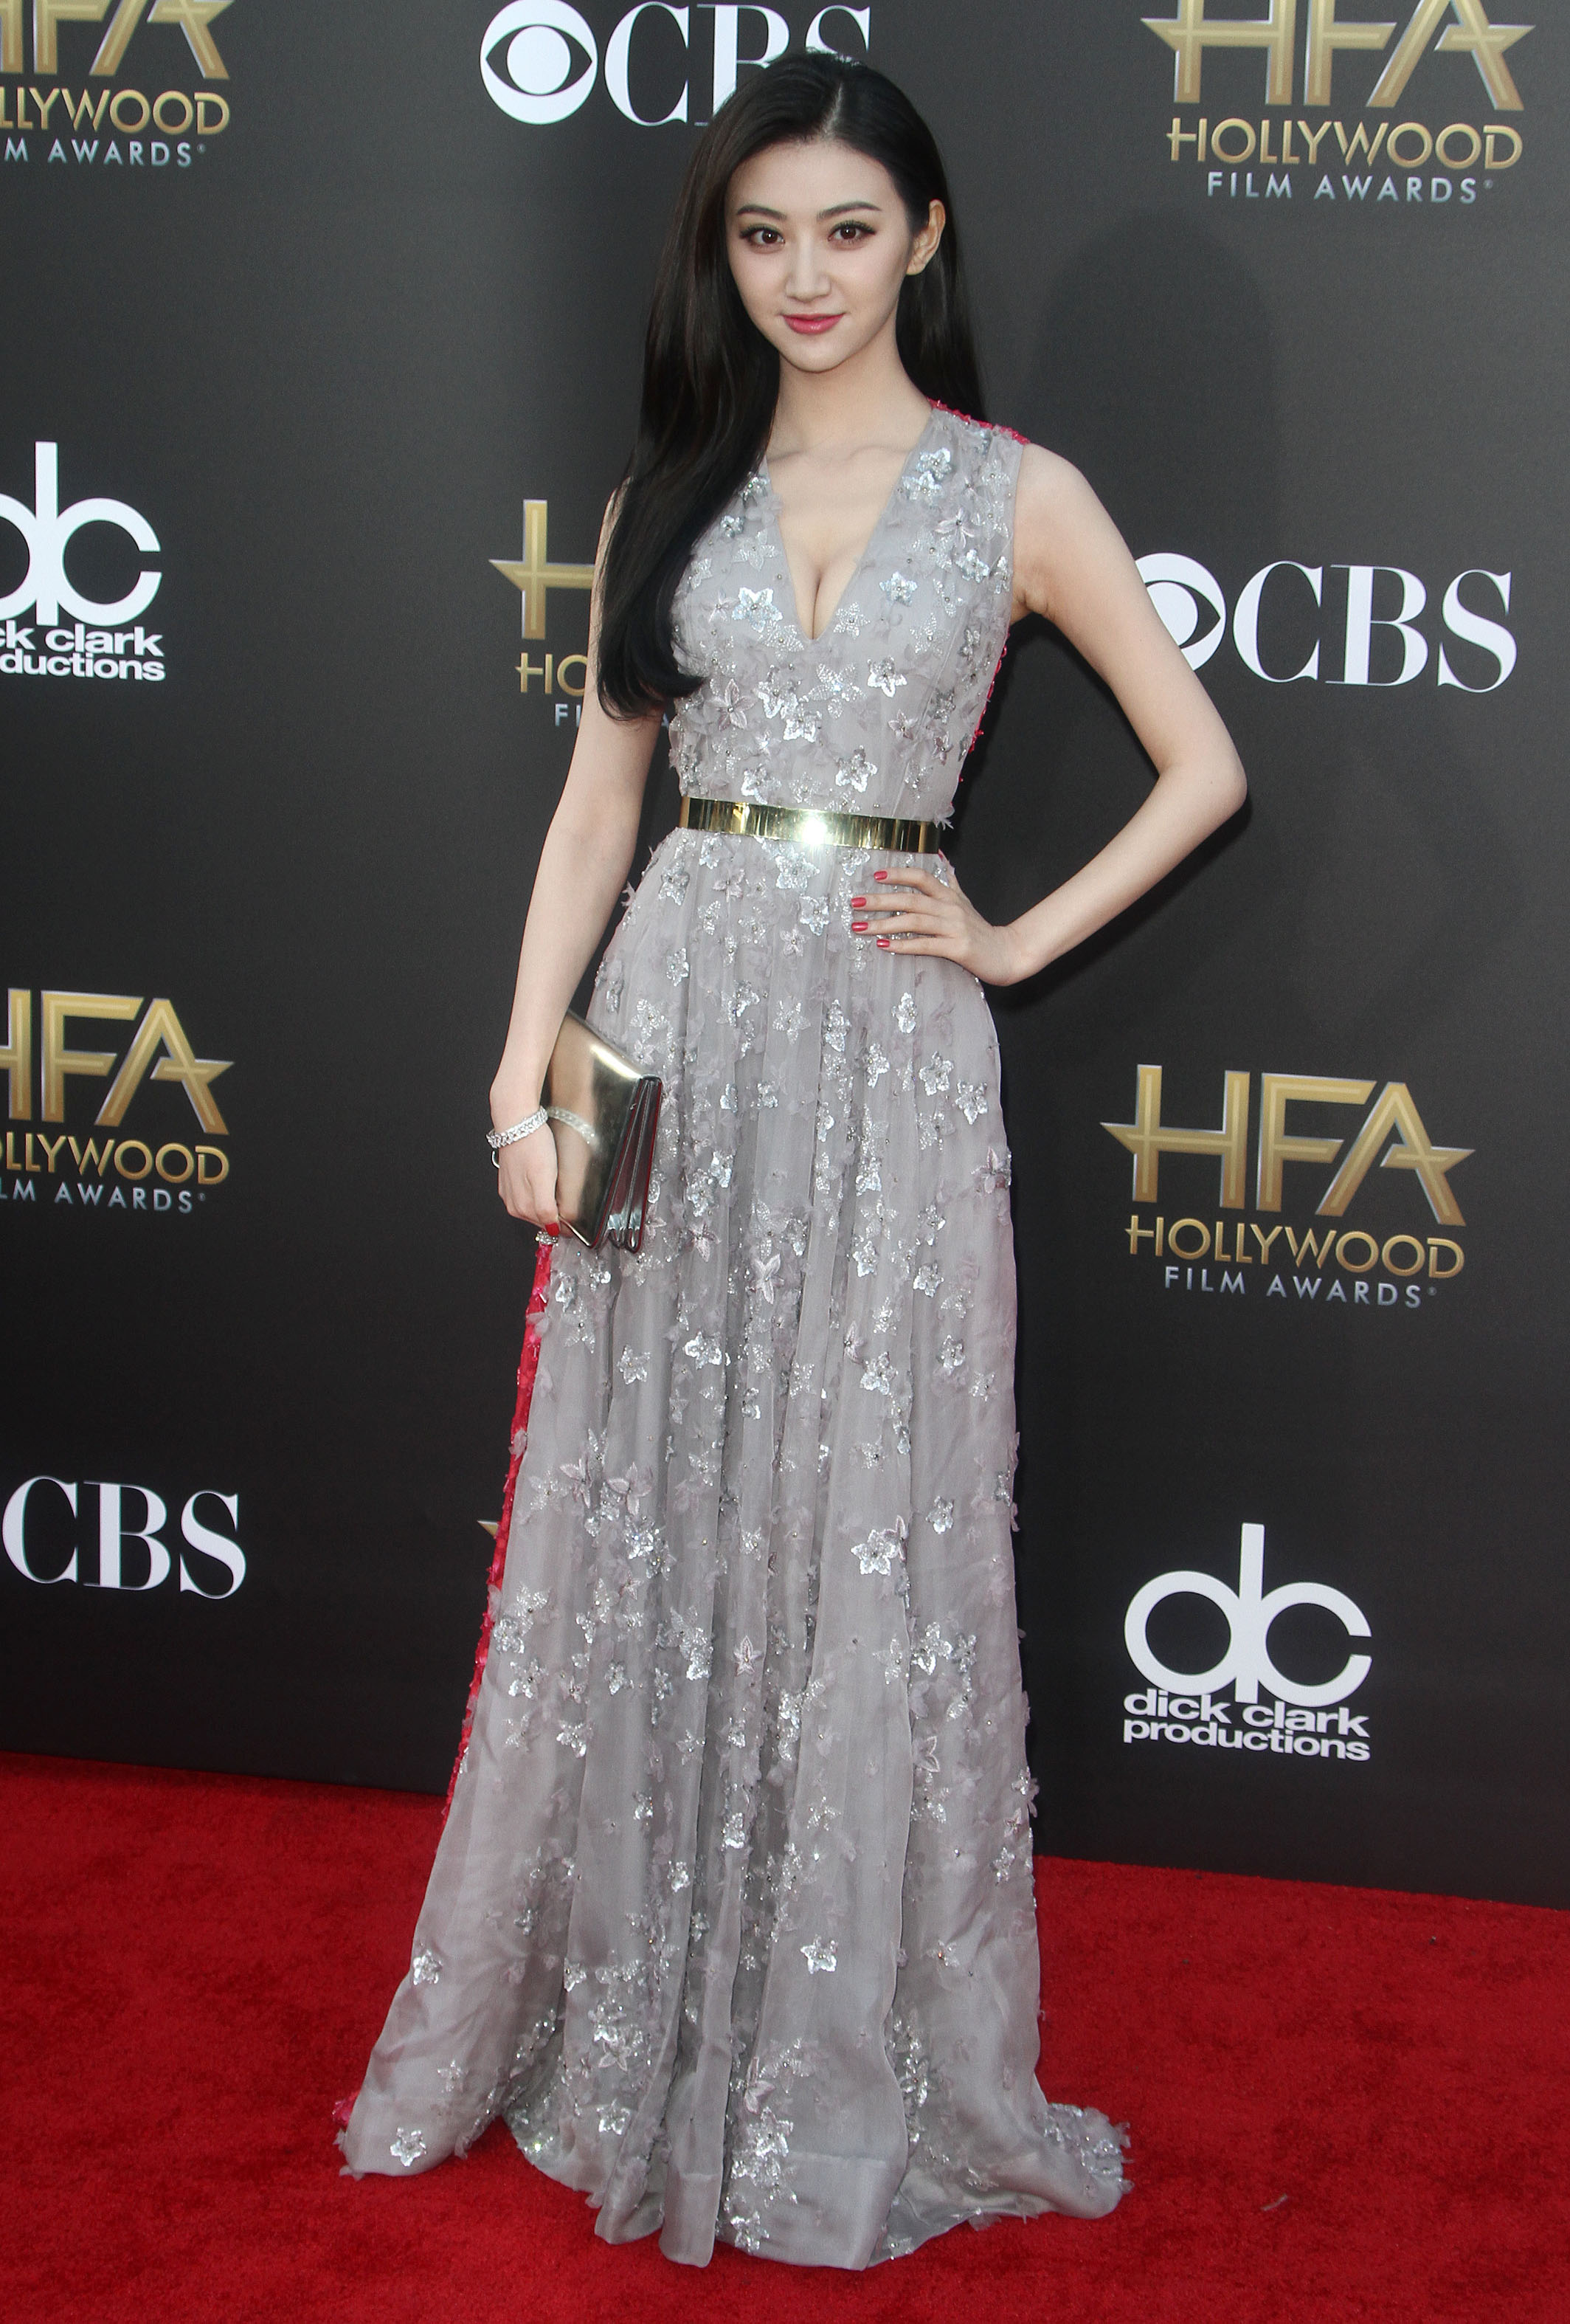 Jing tian was in attendance at the 18th annual hollywood film awards